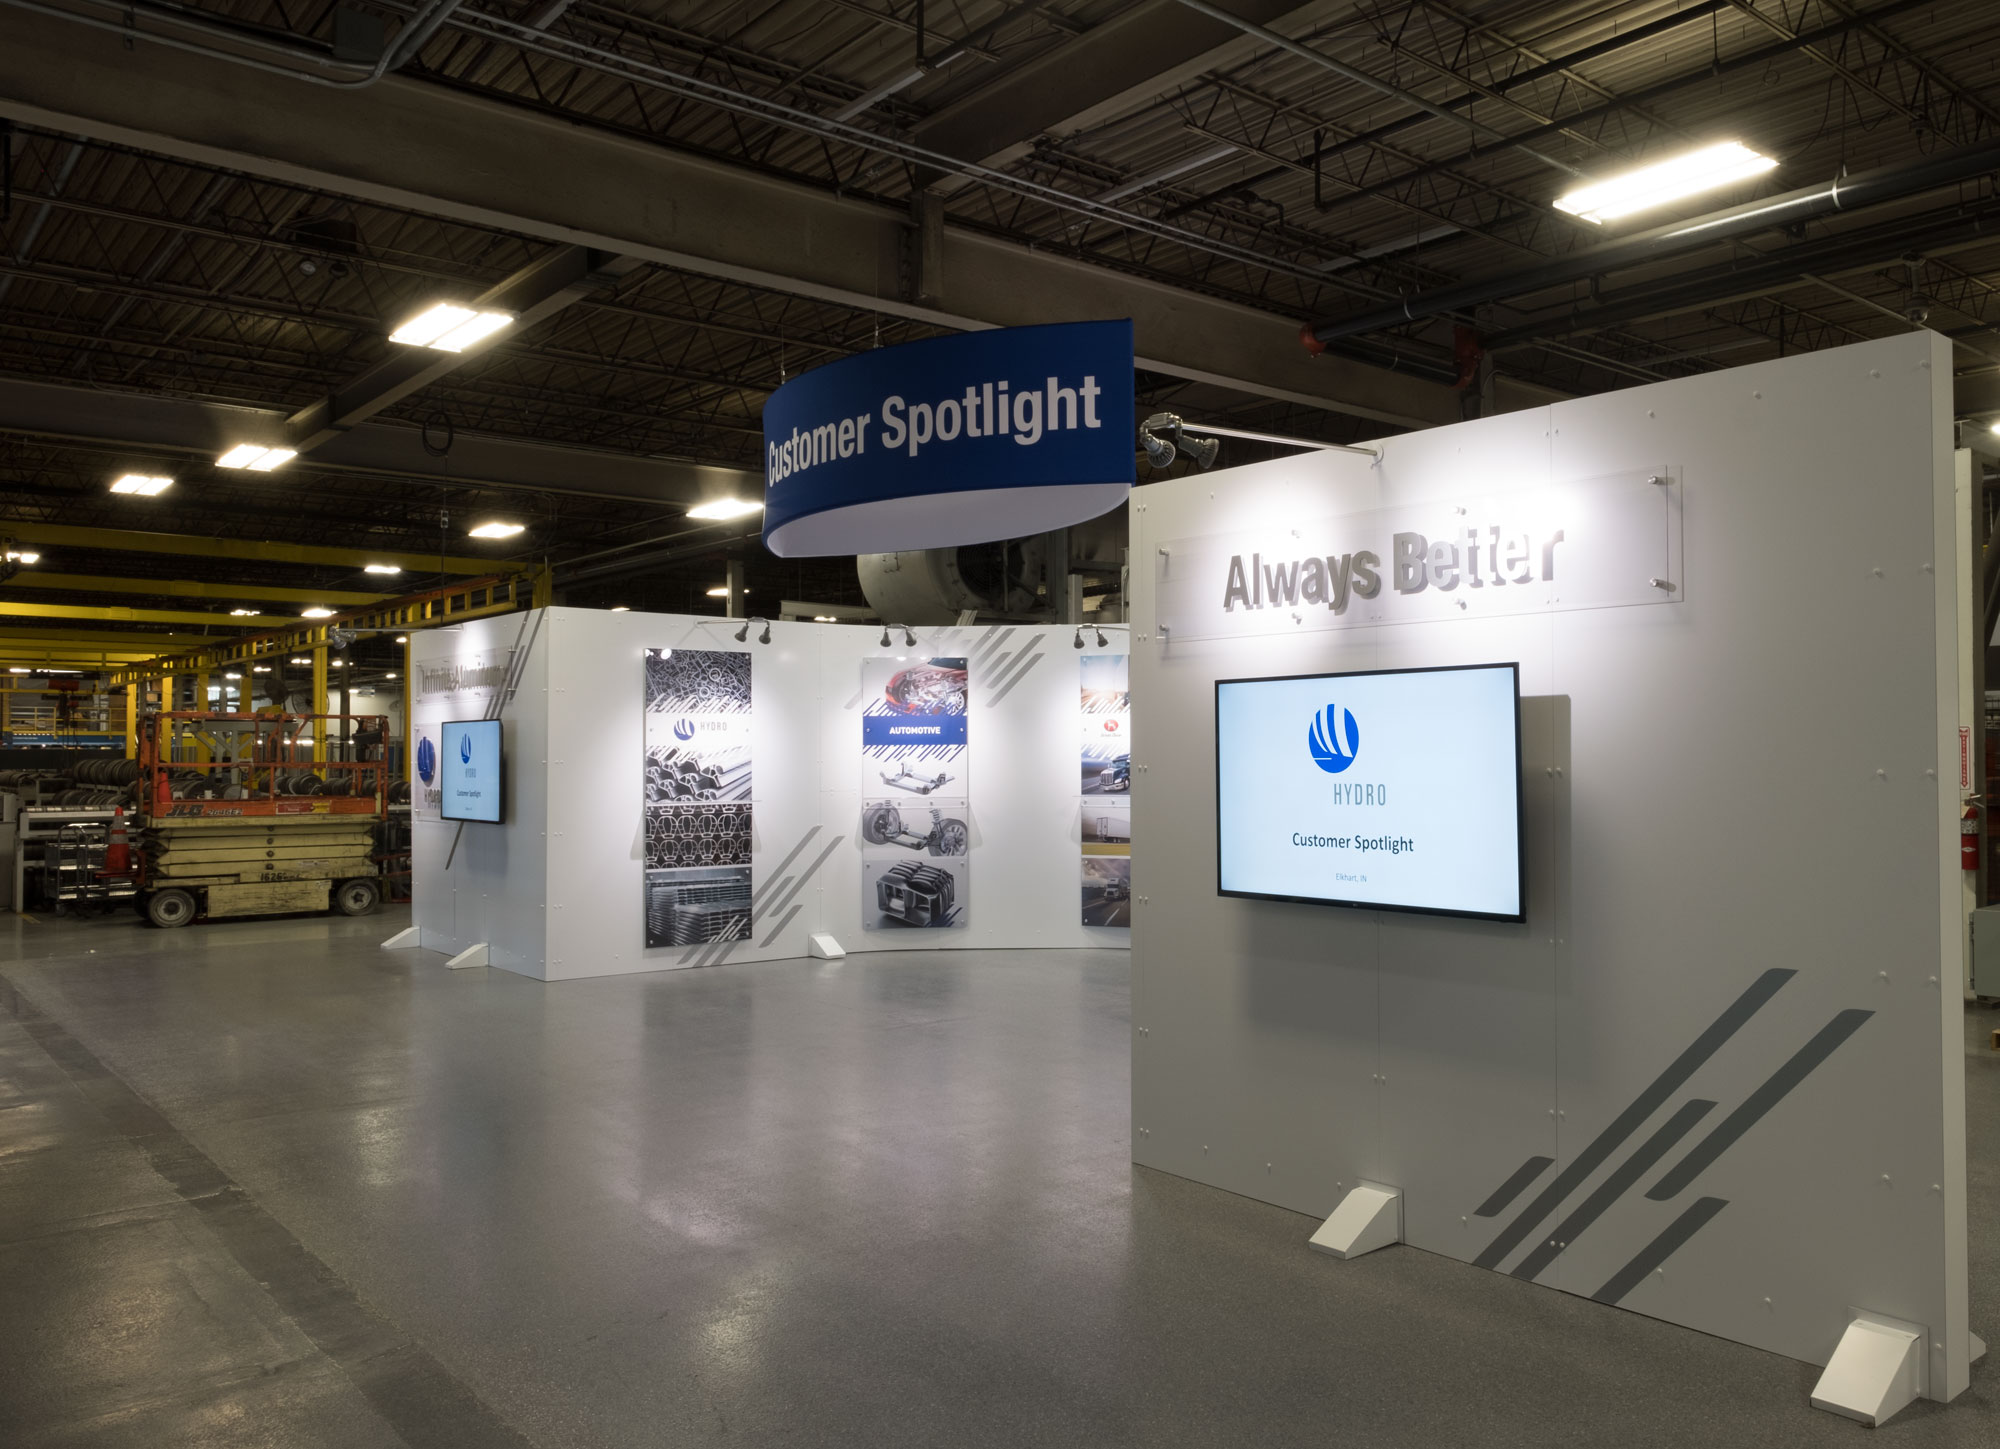 Agio Imaging, Freestanding Dibond Display, Hydro Customer Spotlight, 3A Composites USA